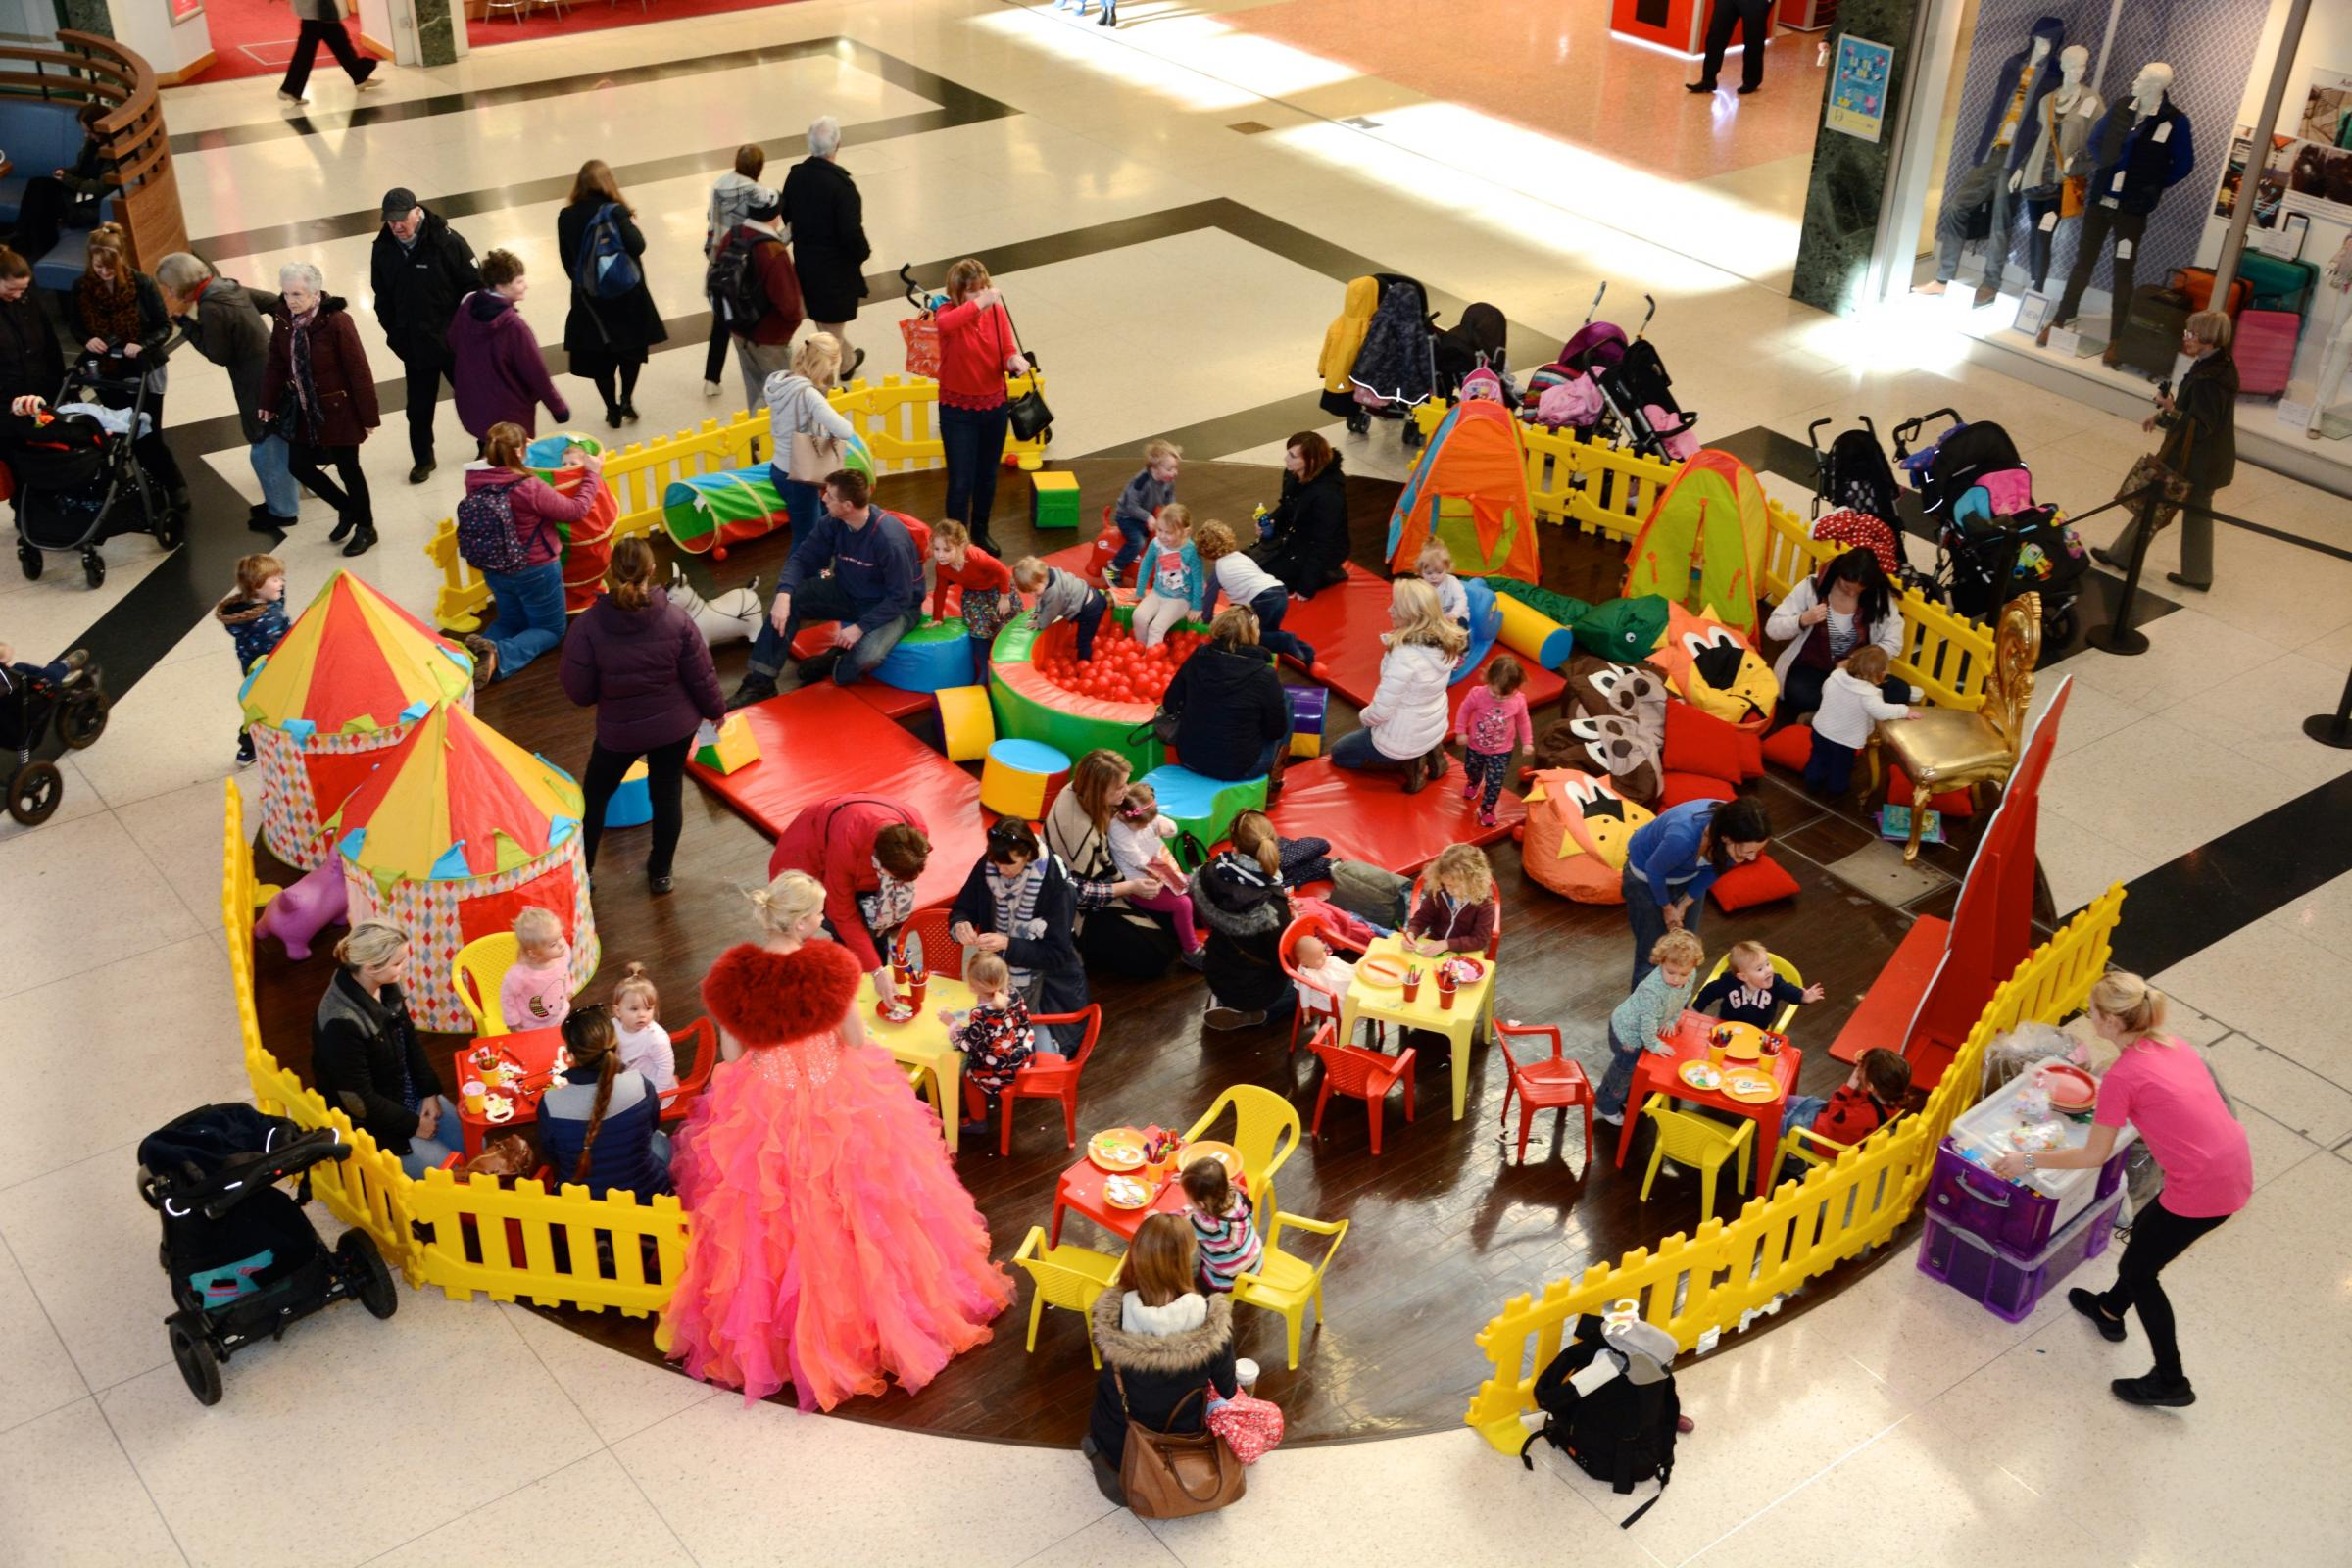 Ocean themed kids' club at the Dolphin Shopping Centre